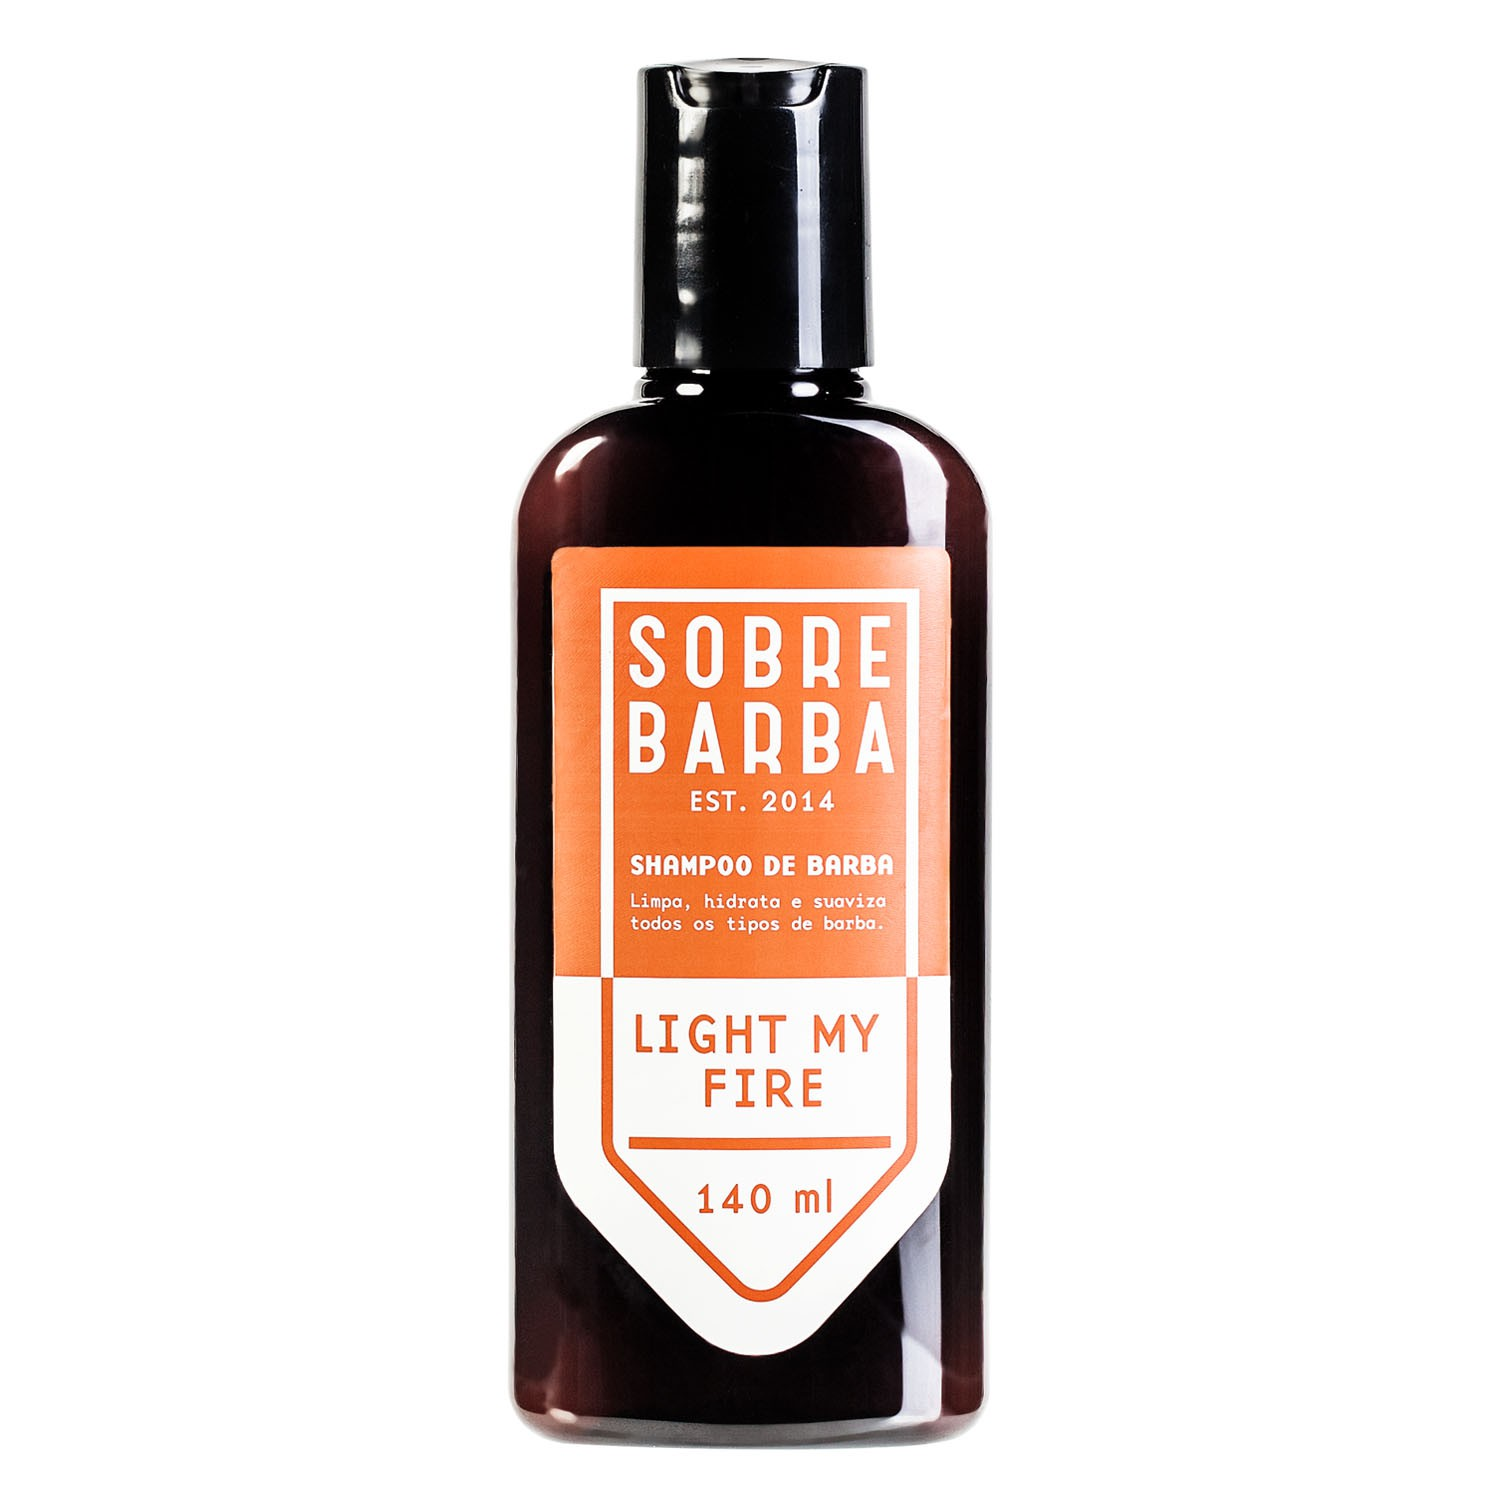 Shampoo de Barba Sobre Barba light my Fire 140ml